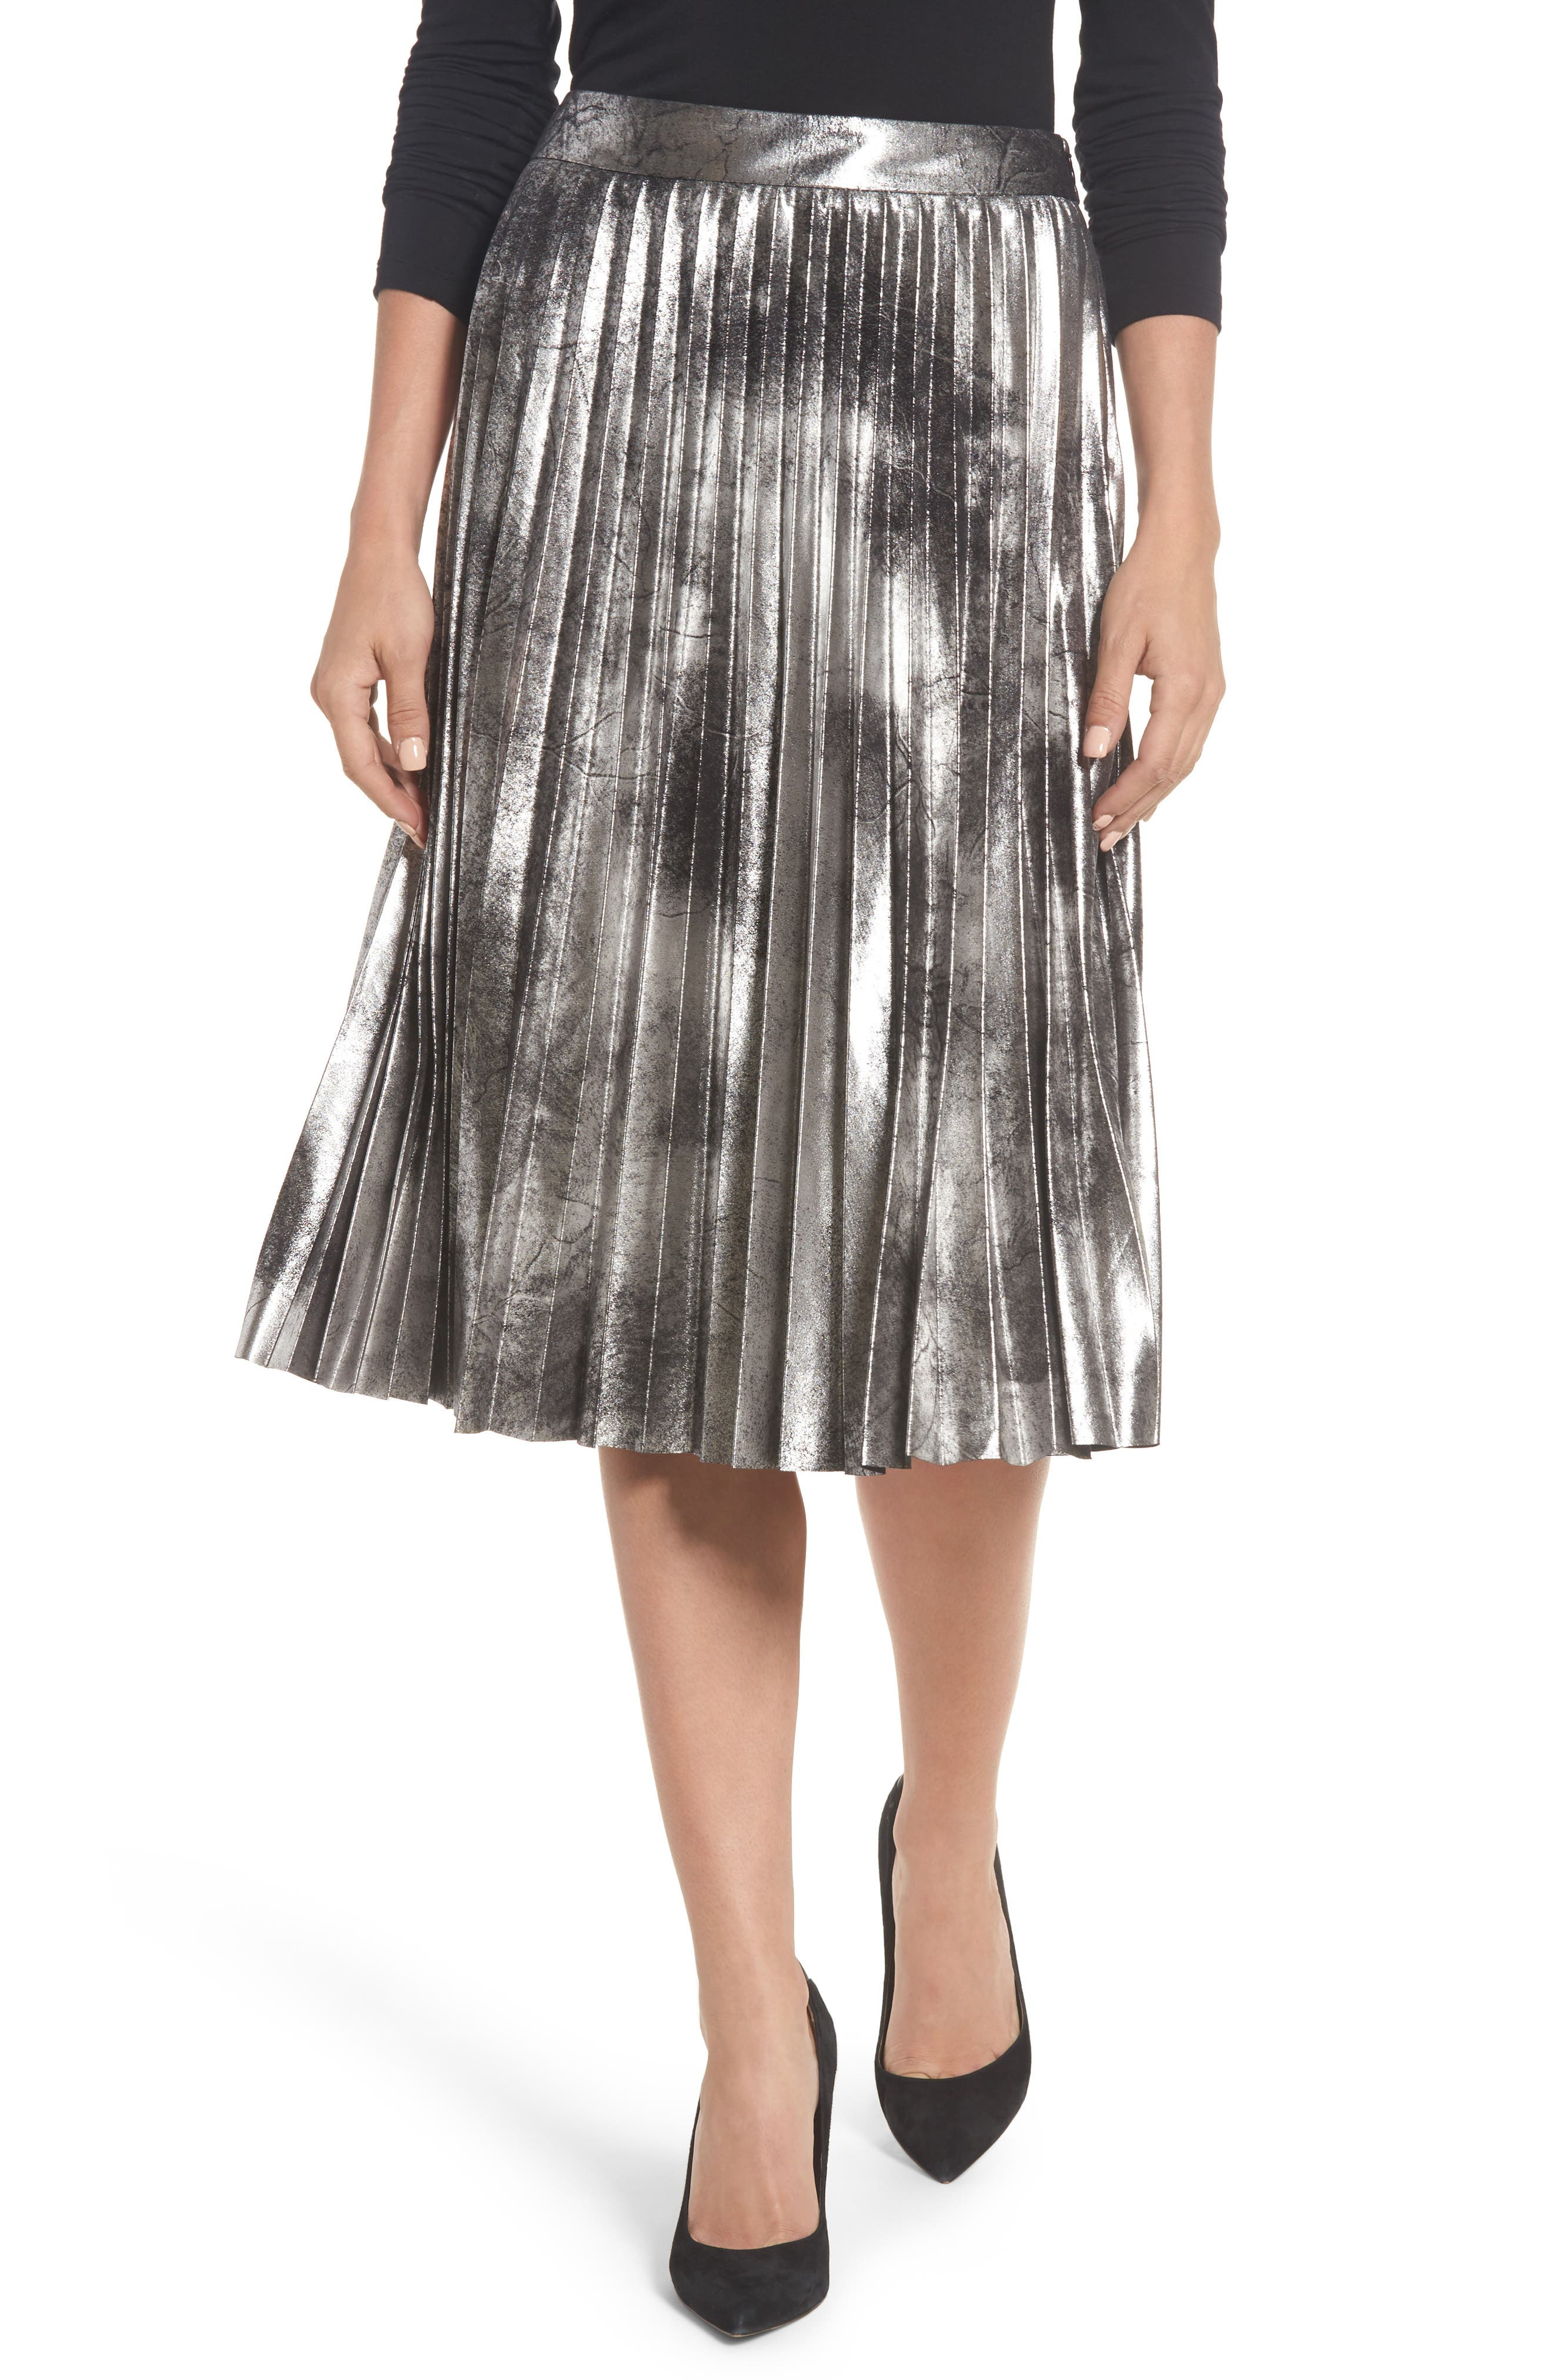 Alternate Image 1 Selected - Halogen® Metallic Pleated Skirt (Regular & Petite)